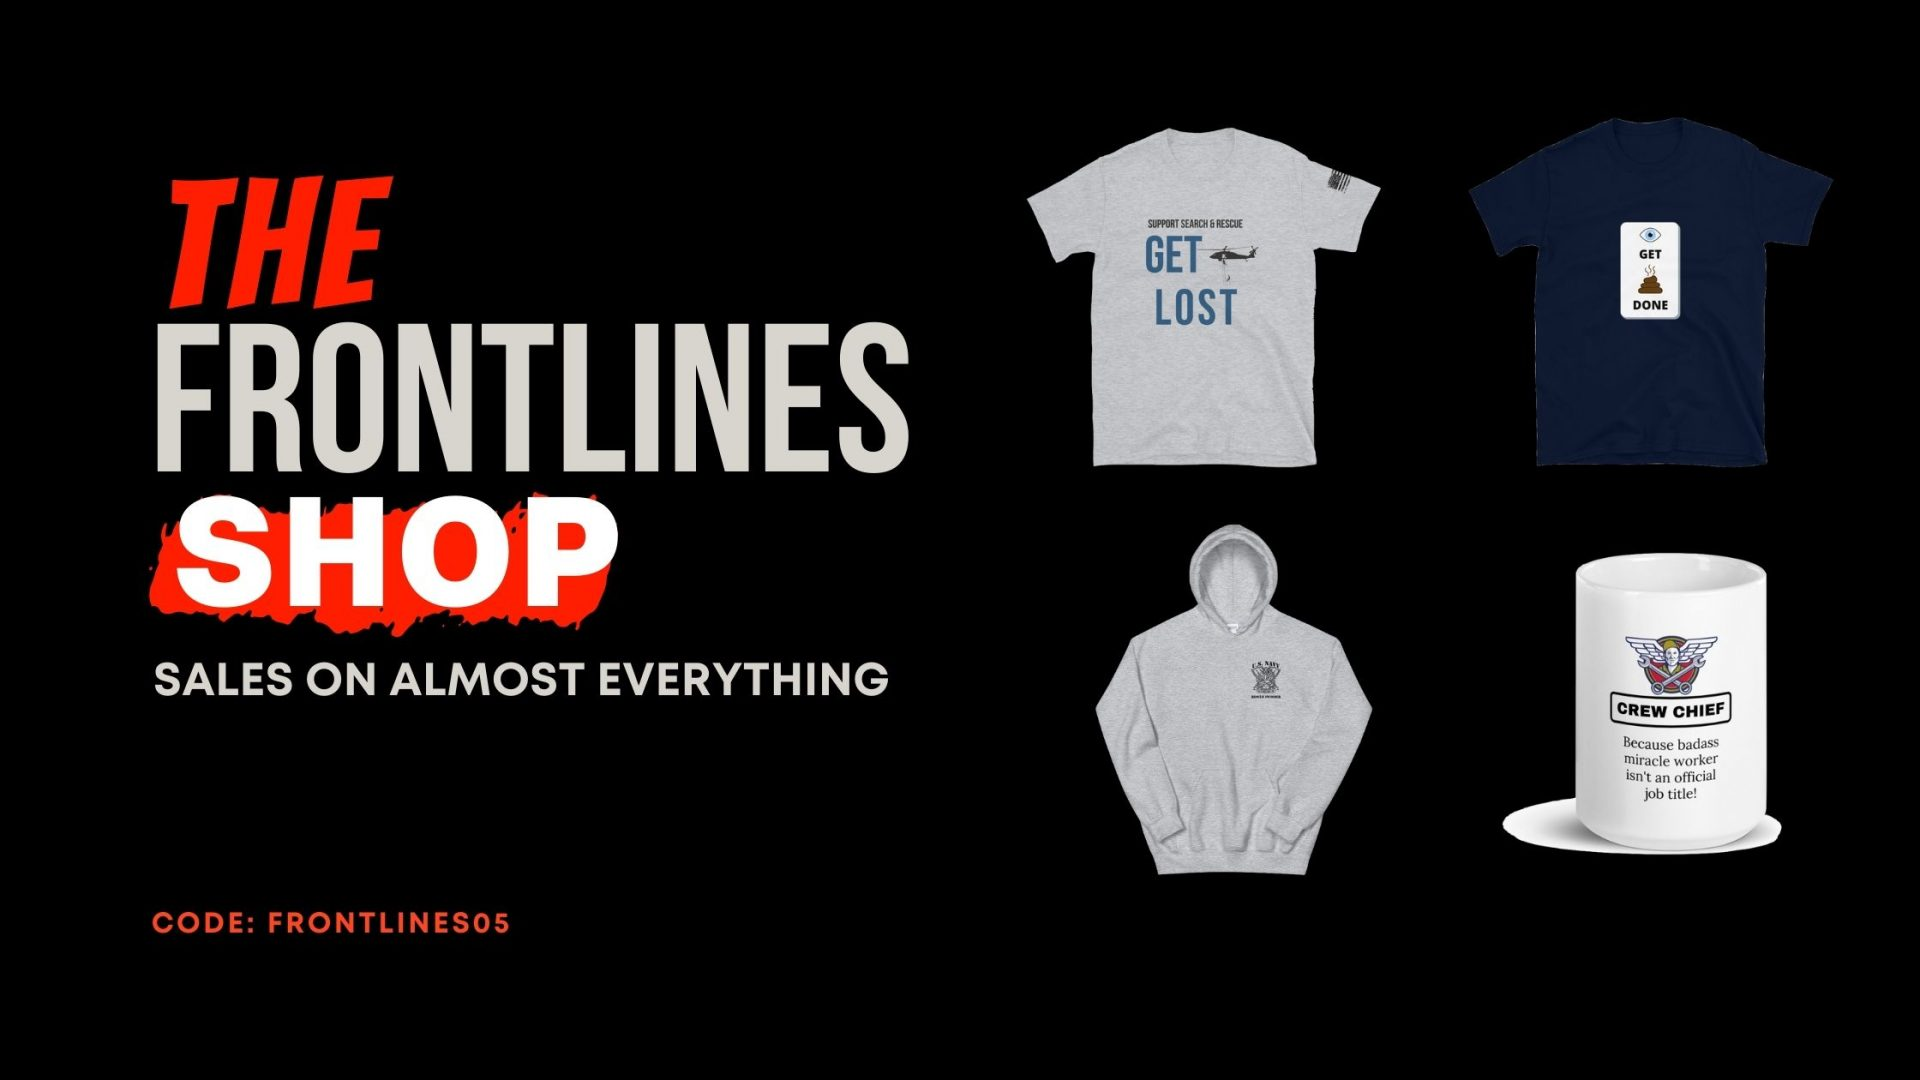 The Frontlines Shop for military apparrel, shirts, hoodies, coffee cups, and hats.